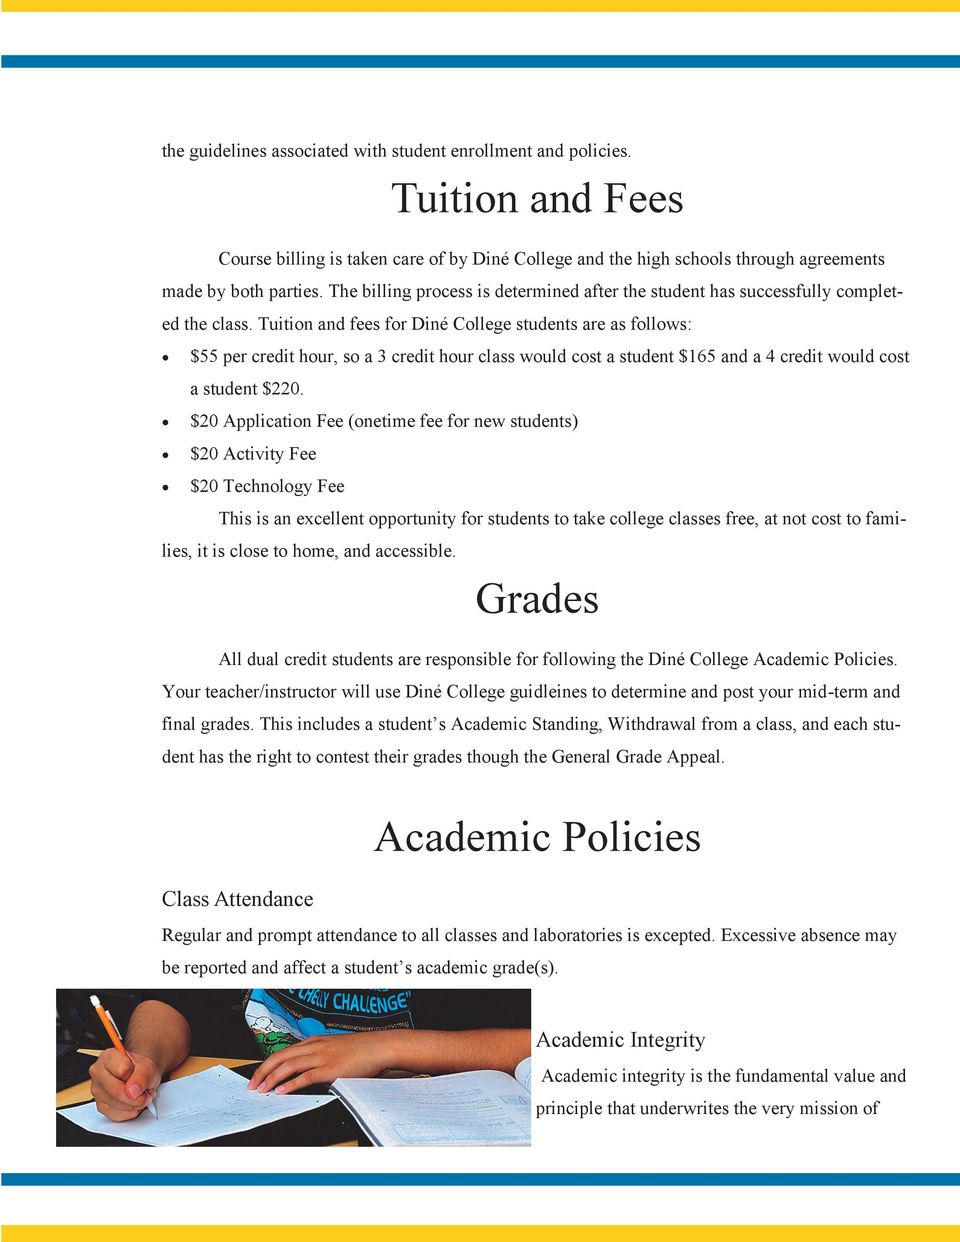 Tuition and fees for Diné College students are as follows: $55 per credit hour, so a 3 credit hour class would cost a student $165 and a 4 credit would cost a student $220.